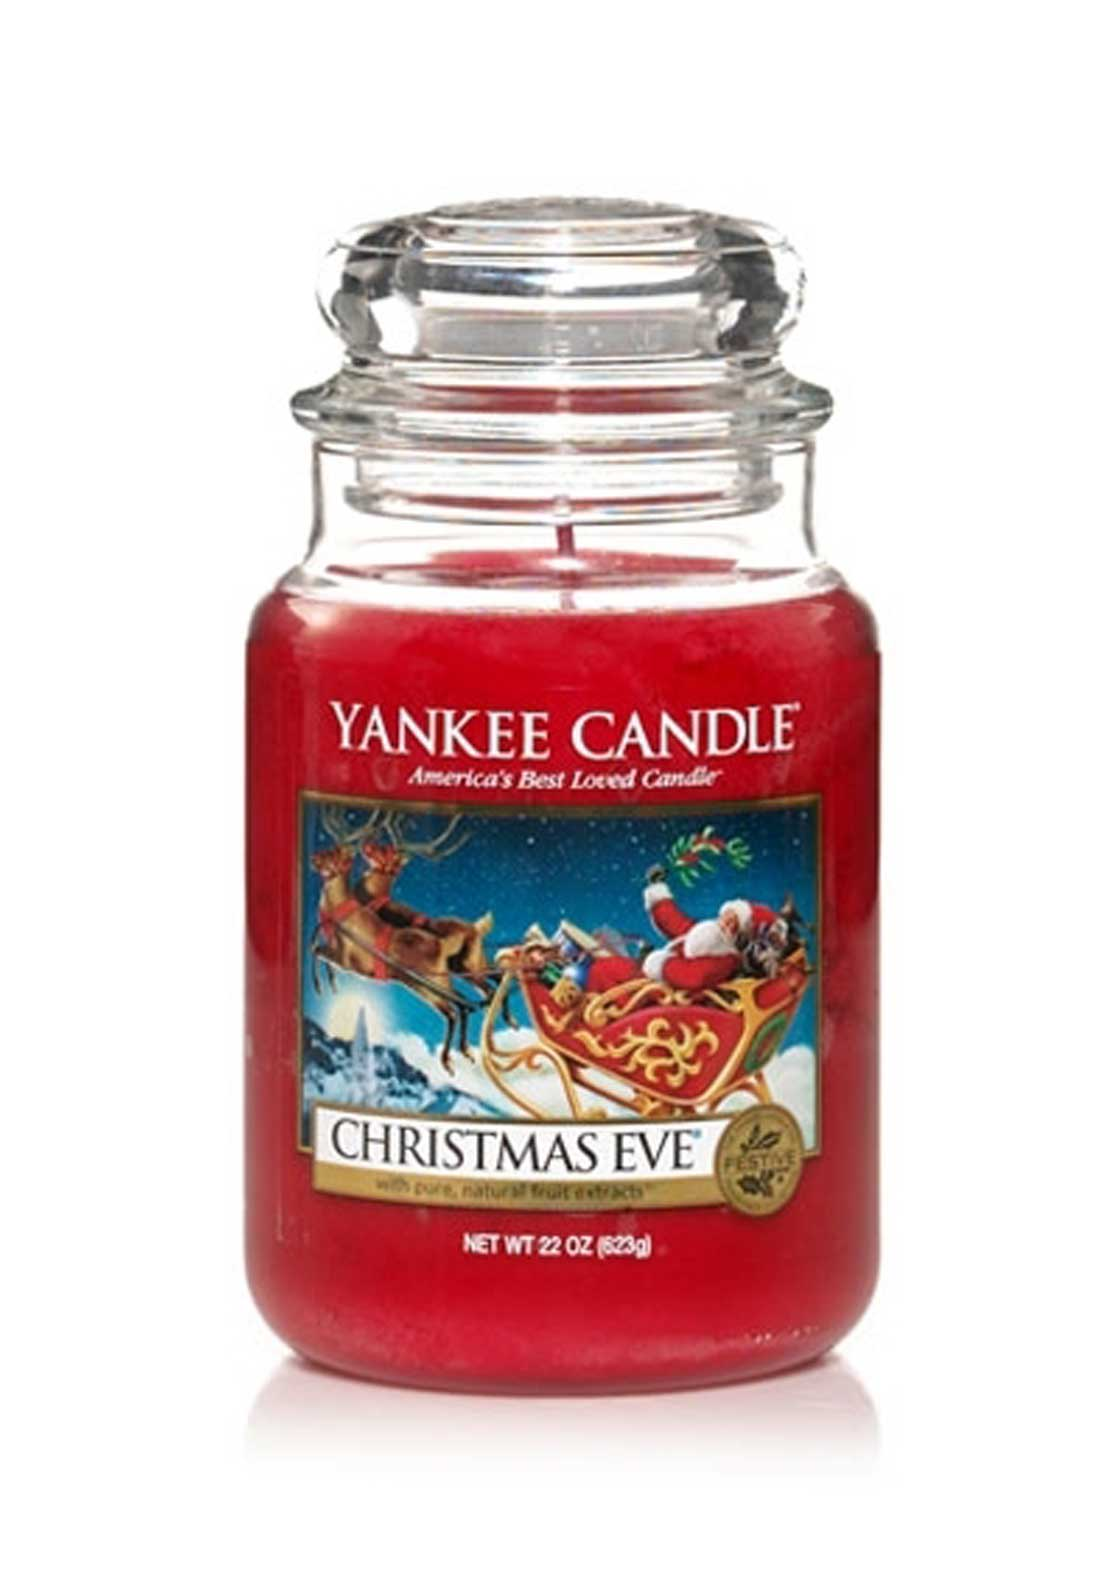 Yankee Candle Large Classic Jar, Christmas Eve